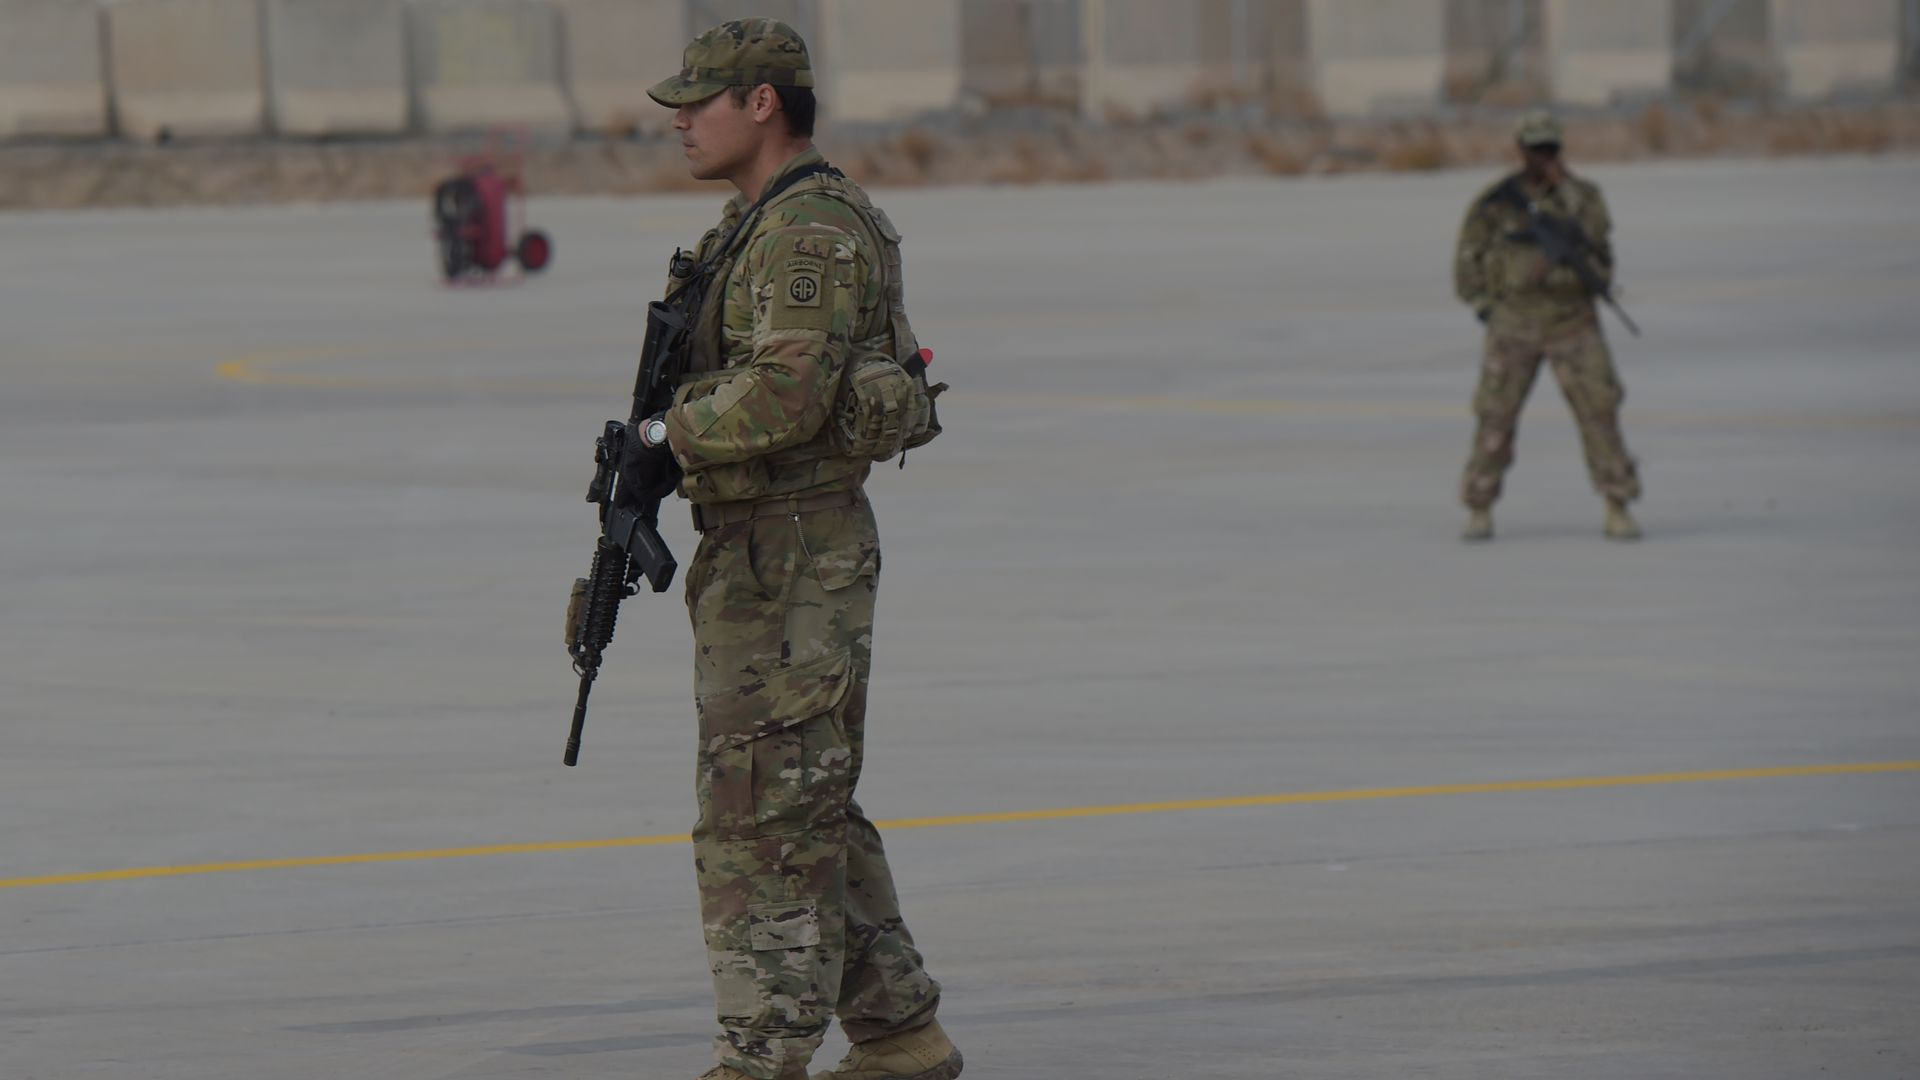 A US soldier stands guard at Kandahar Air base in Afghanistan.